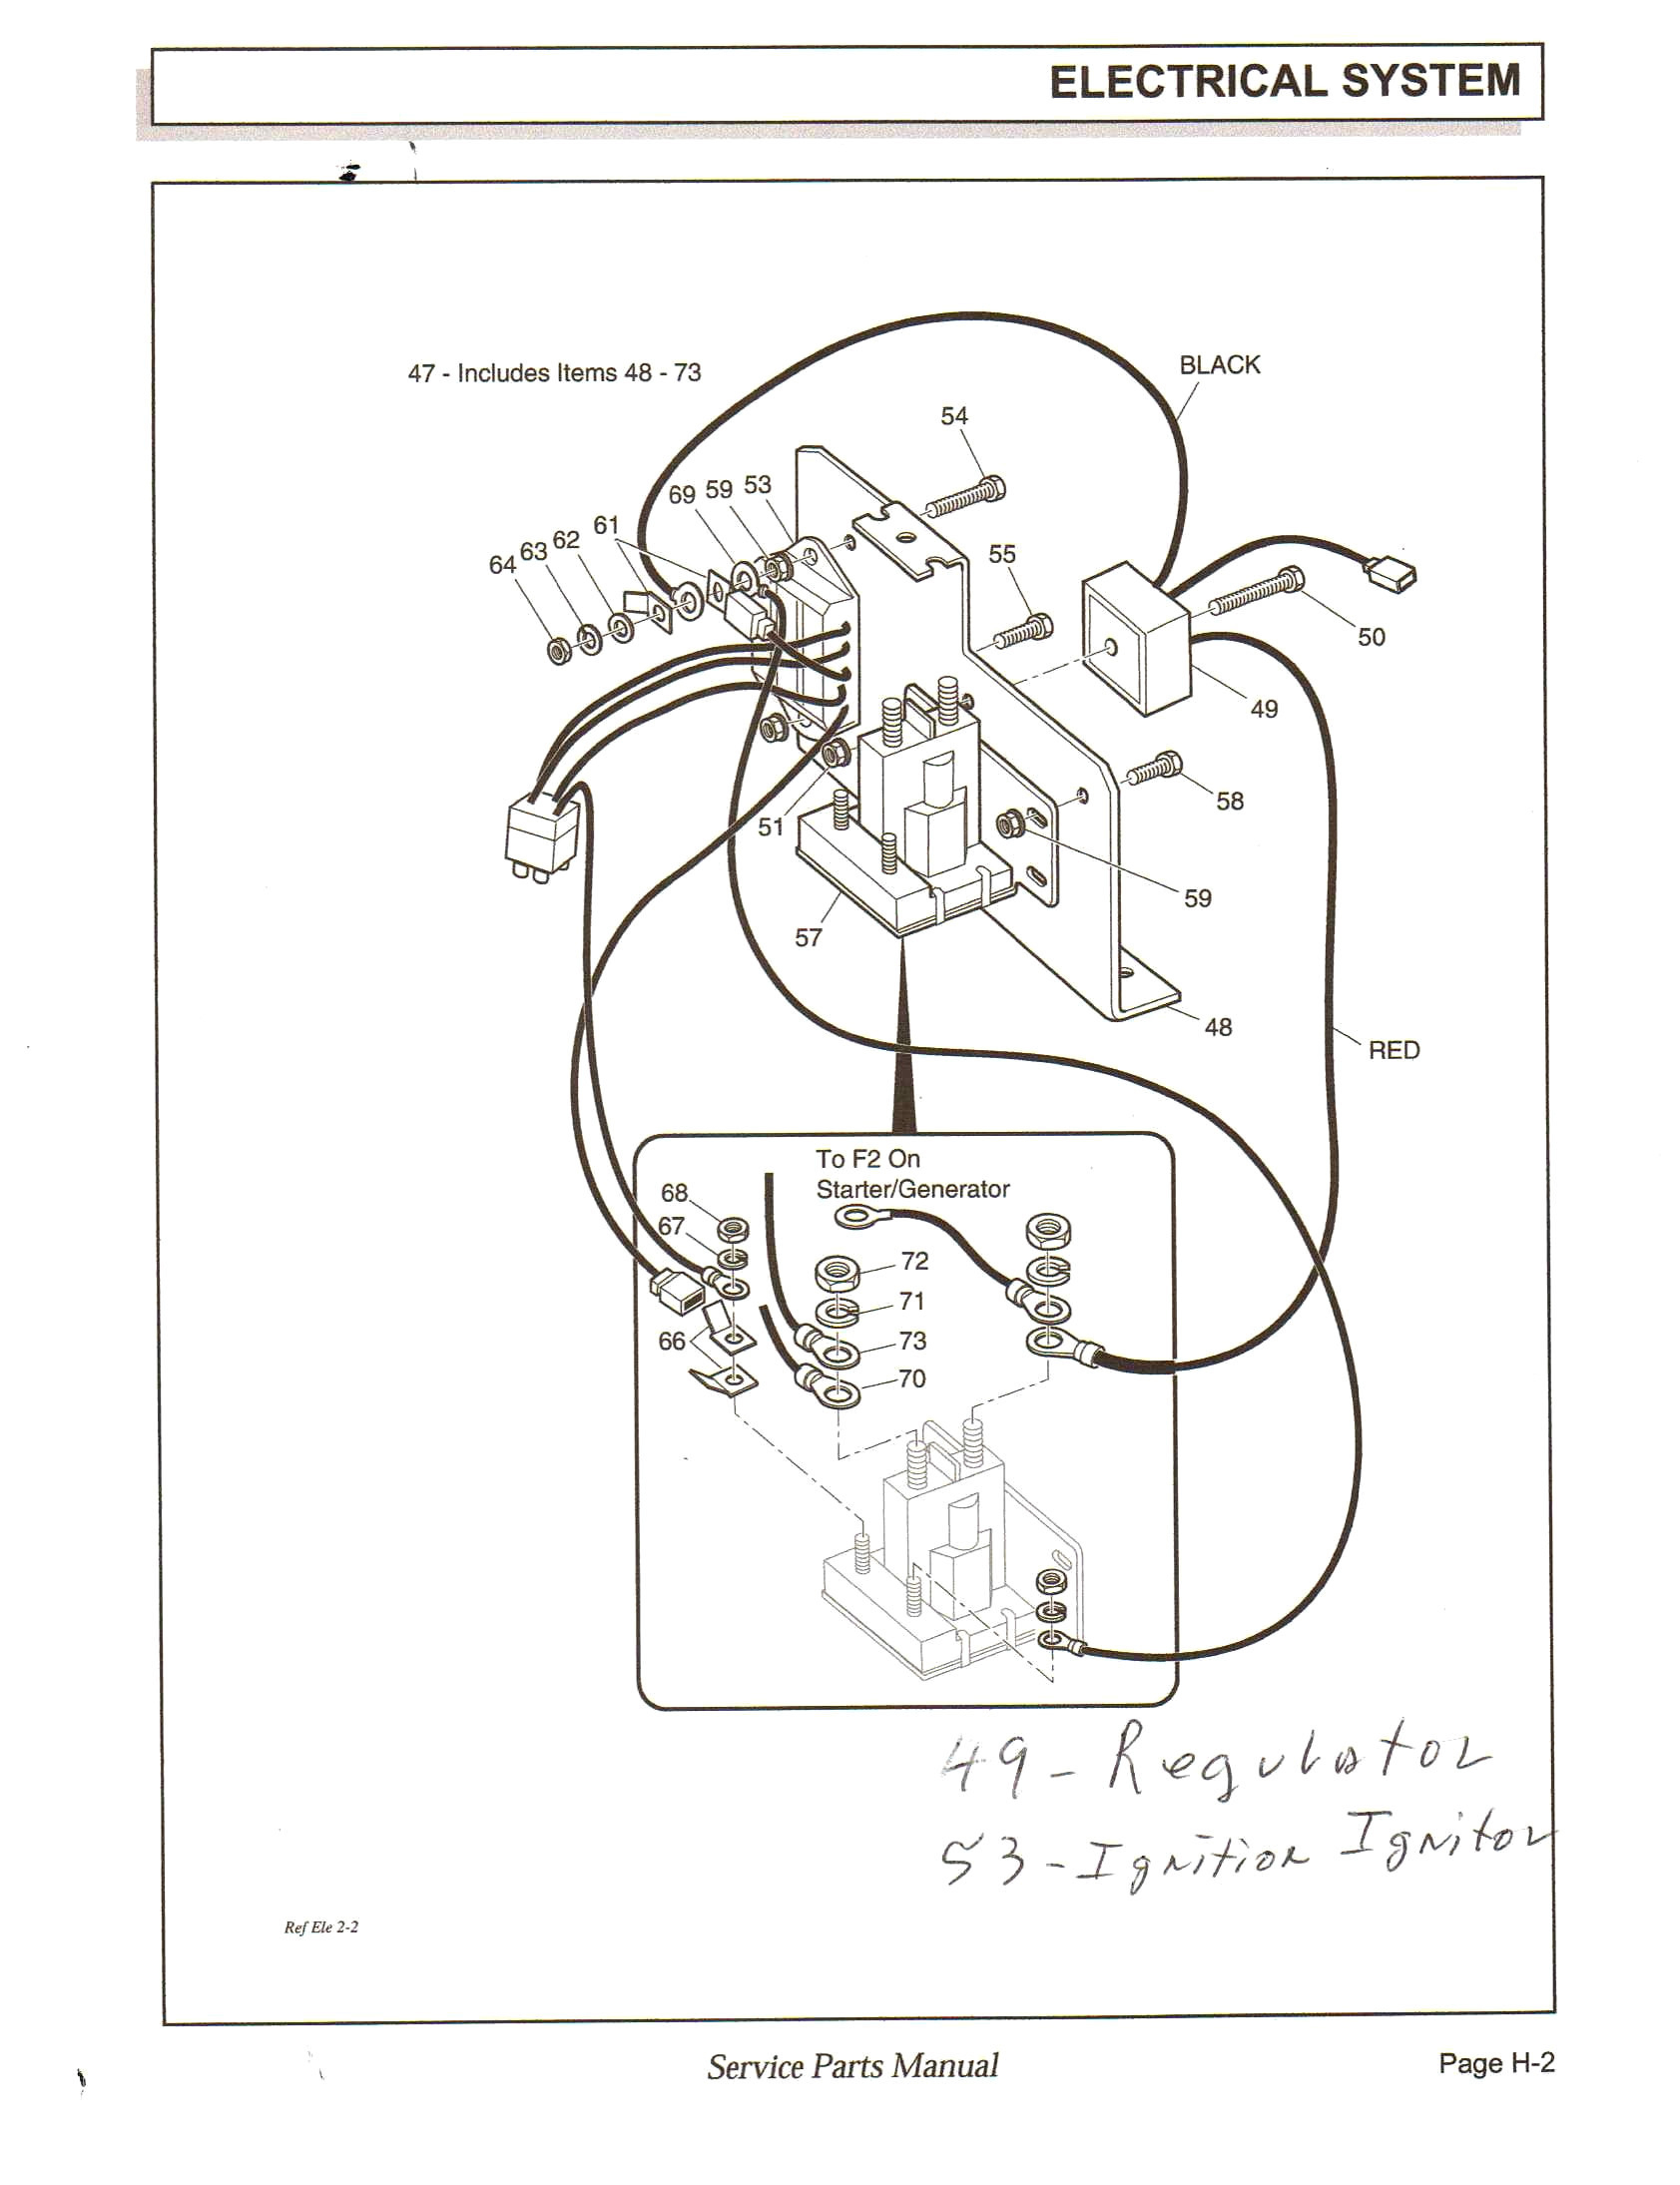 Ez Go Golf Cart Wiring Diagram Pdf - Pickenscountymedicalcenter - Ez Go Gas Golf Cart Wiring Diagram Pdf